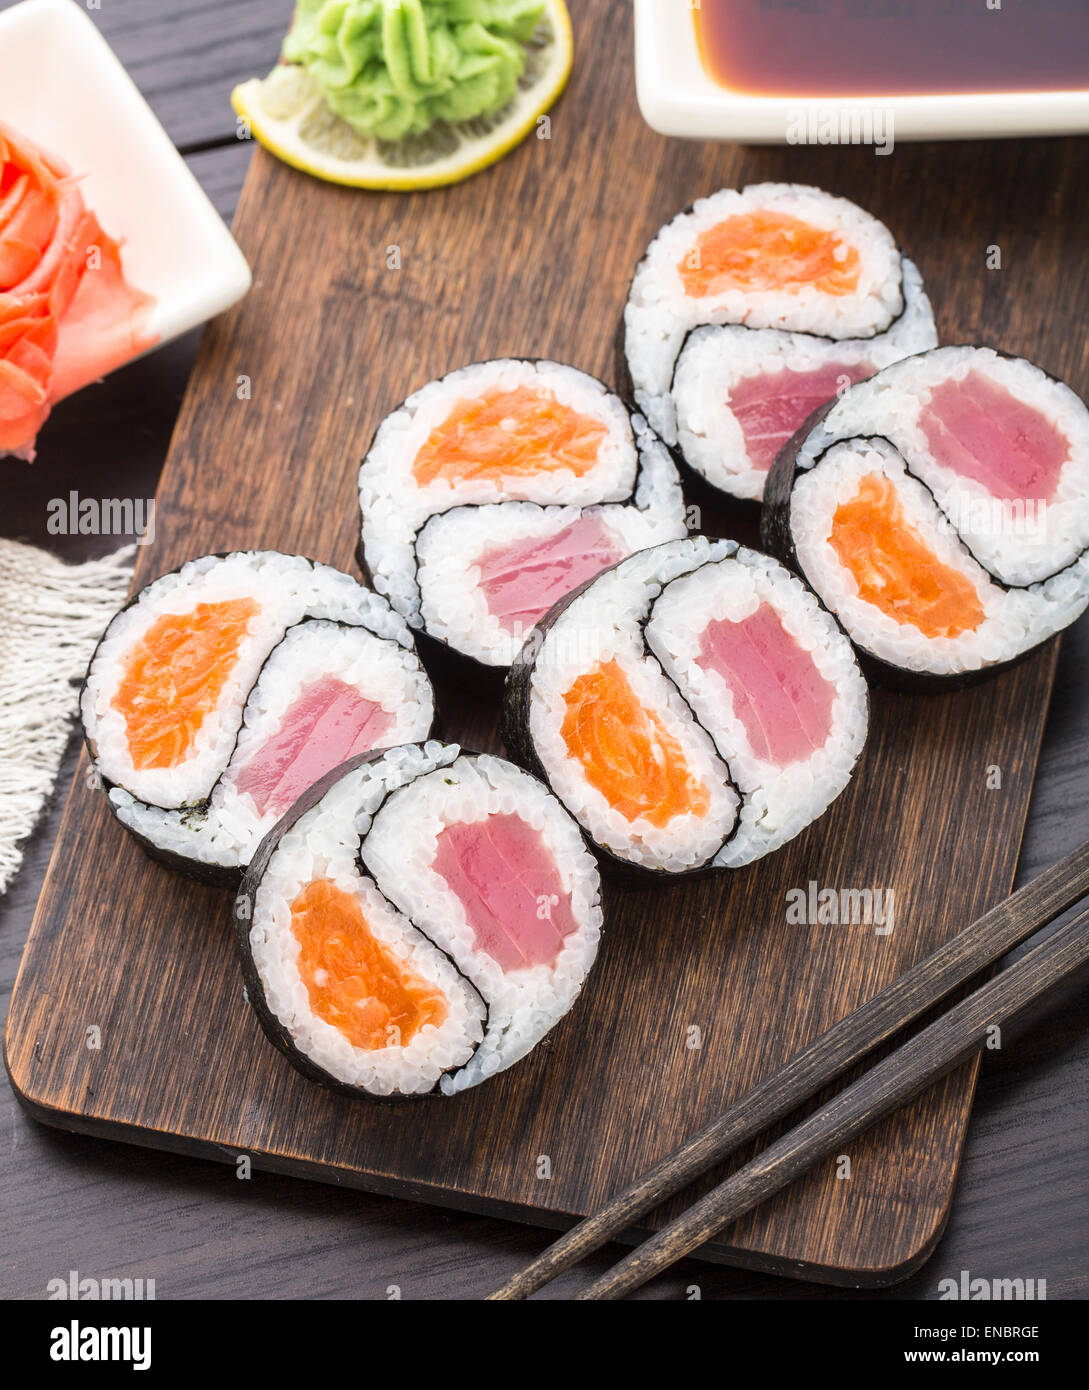 Yin yang futomaki with tuna and salmon on a wooden board - Stock Image